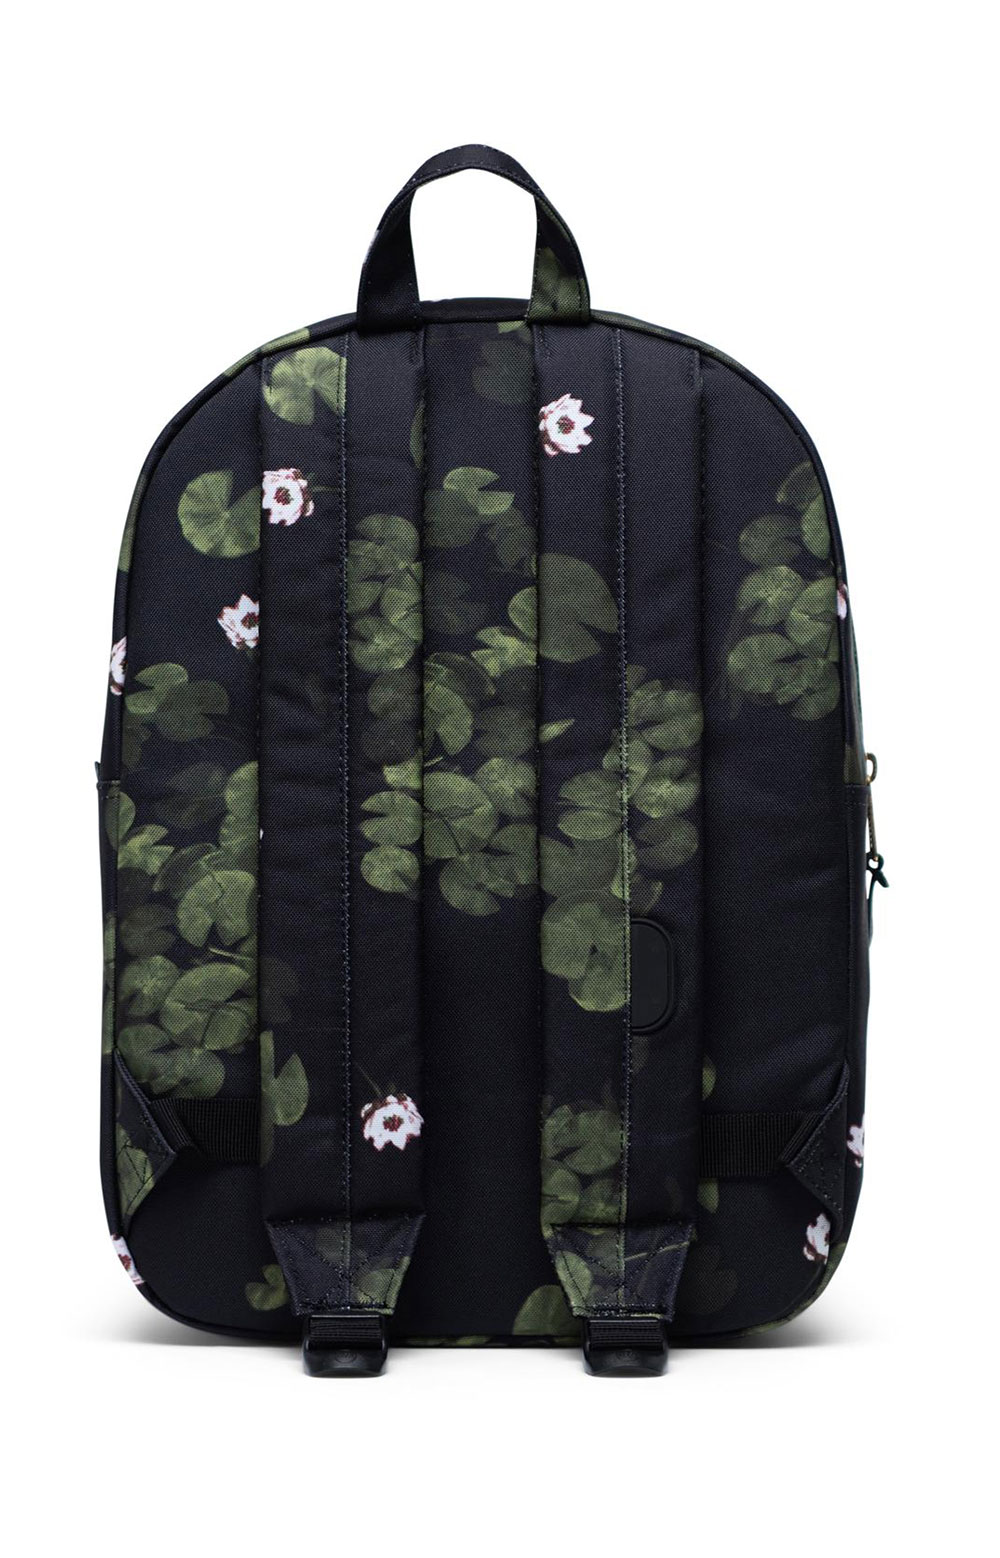 Settlement Mid Backpack - Fine China Floral  4